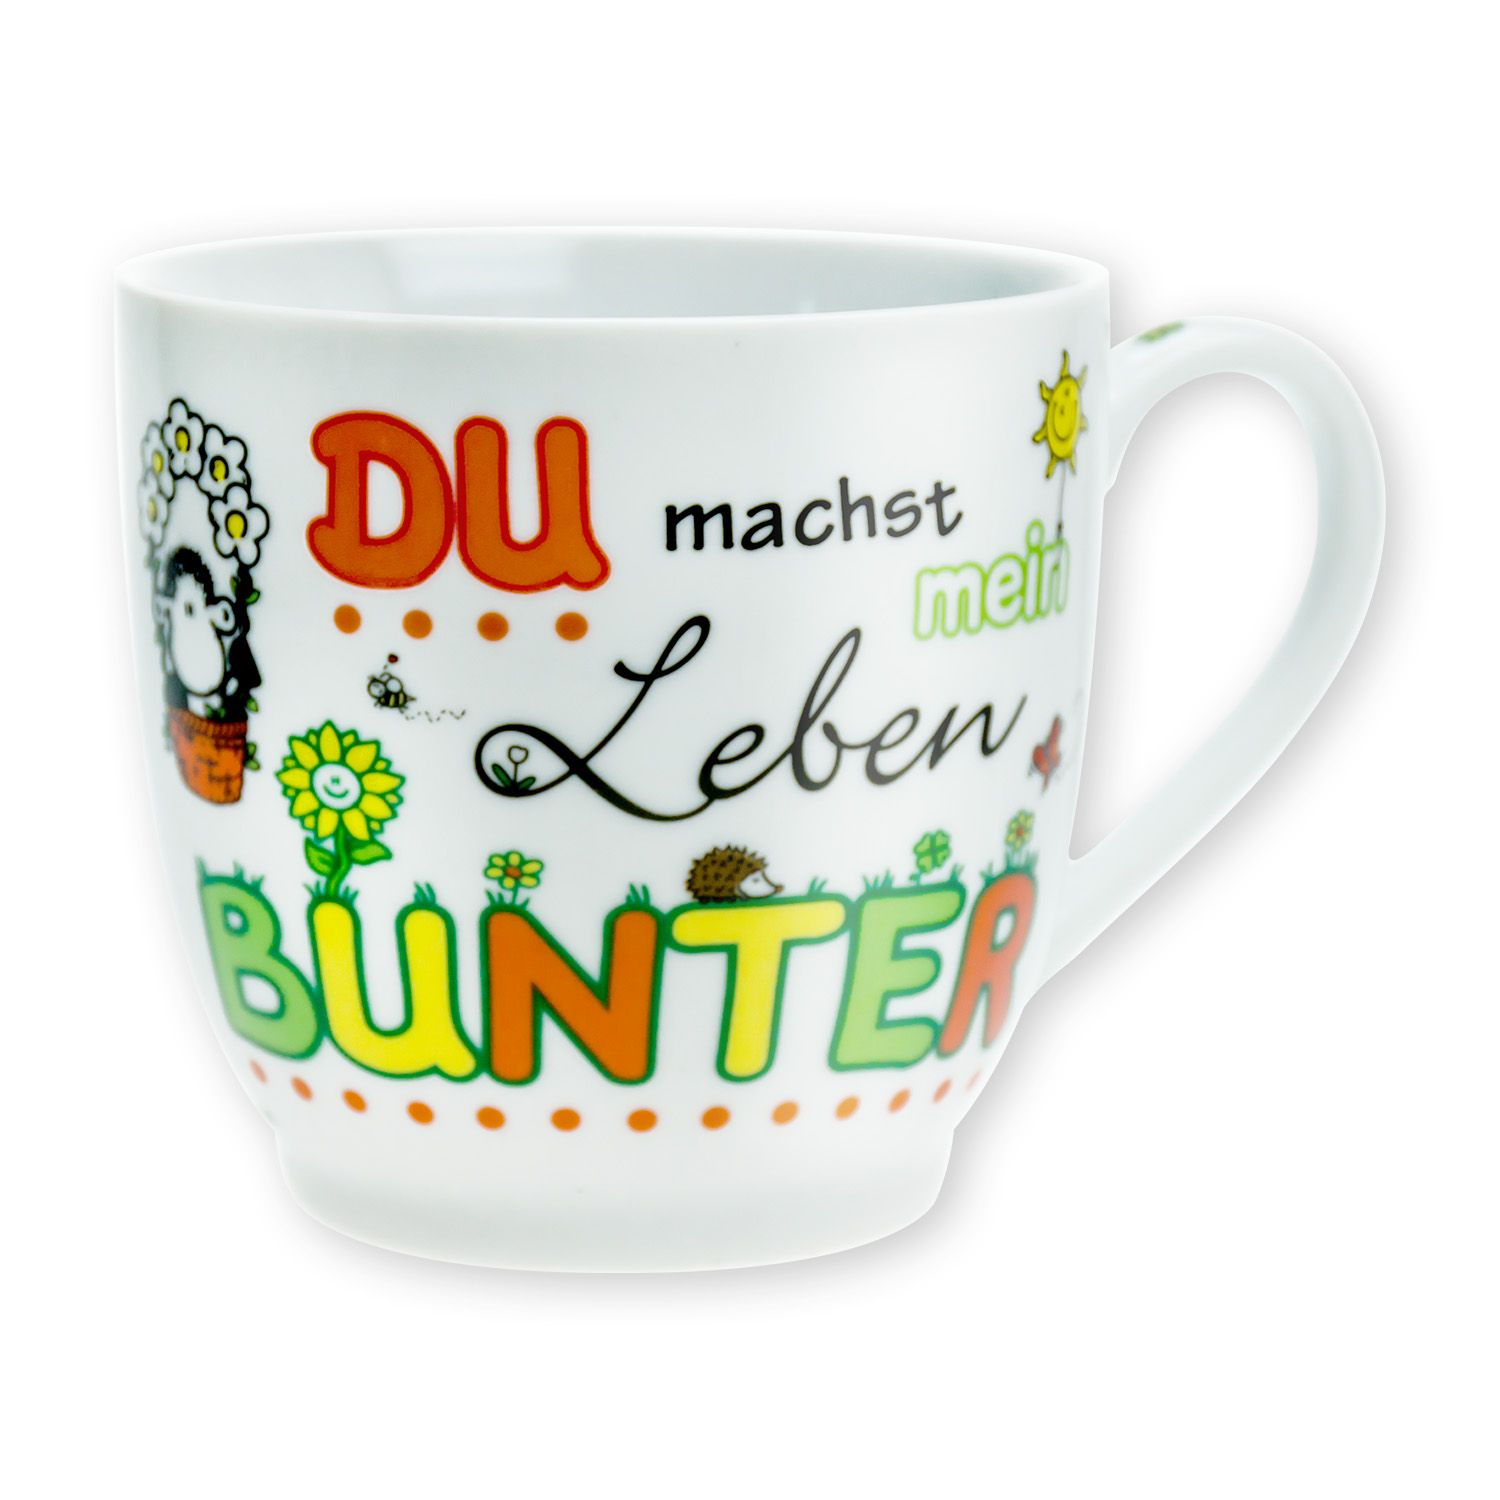 "Tasse ""Bunter"" http://sheepworld.de/shop/nach-Serien-Motive/Bunter/Tasse-BUNTER.html?listtype=search&searchparam=Bunter"